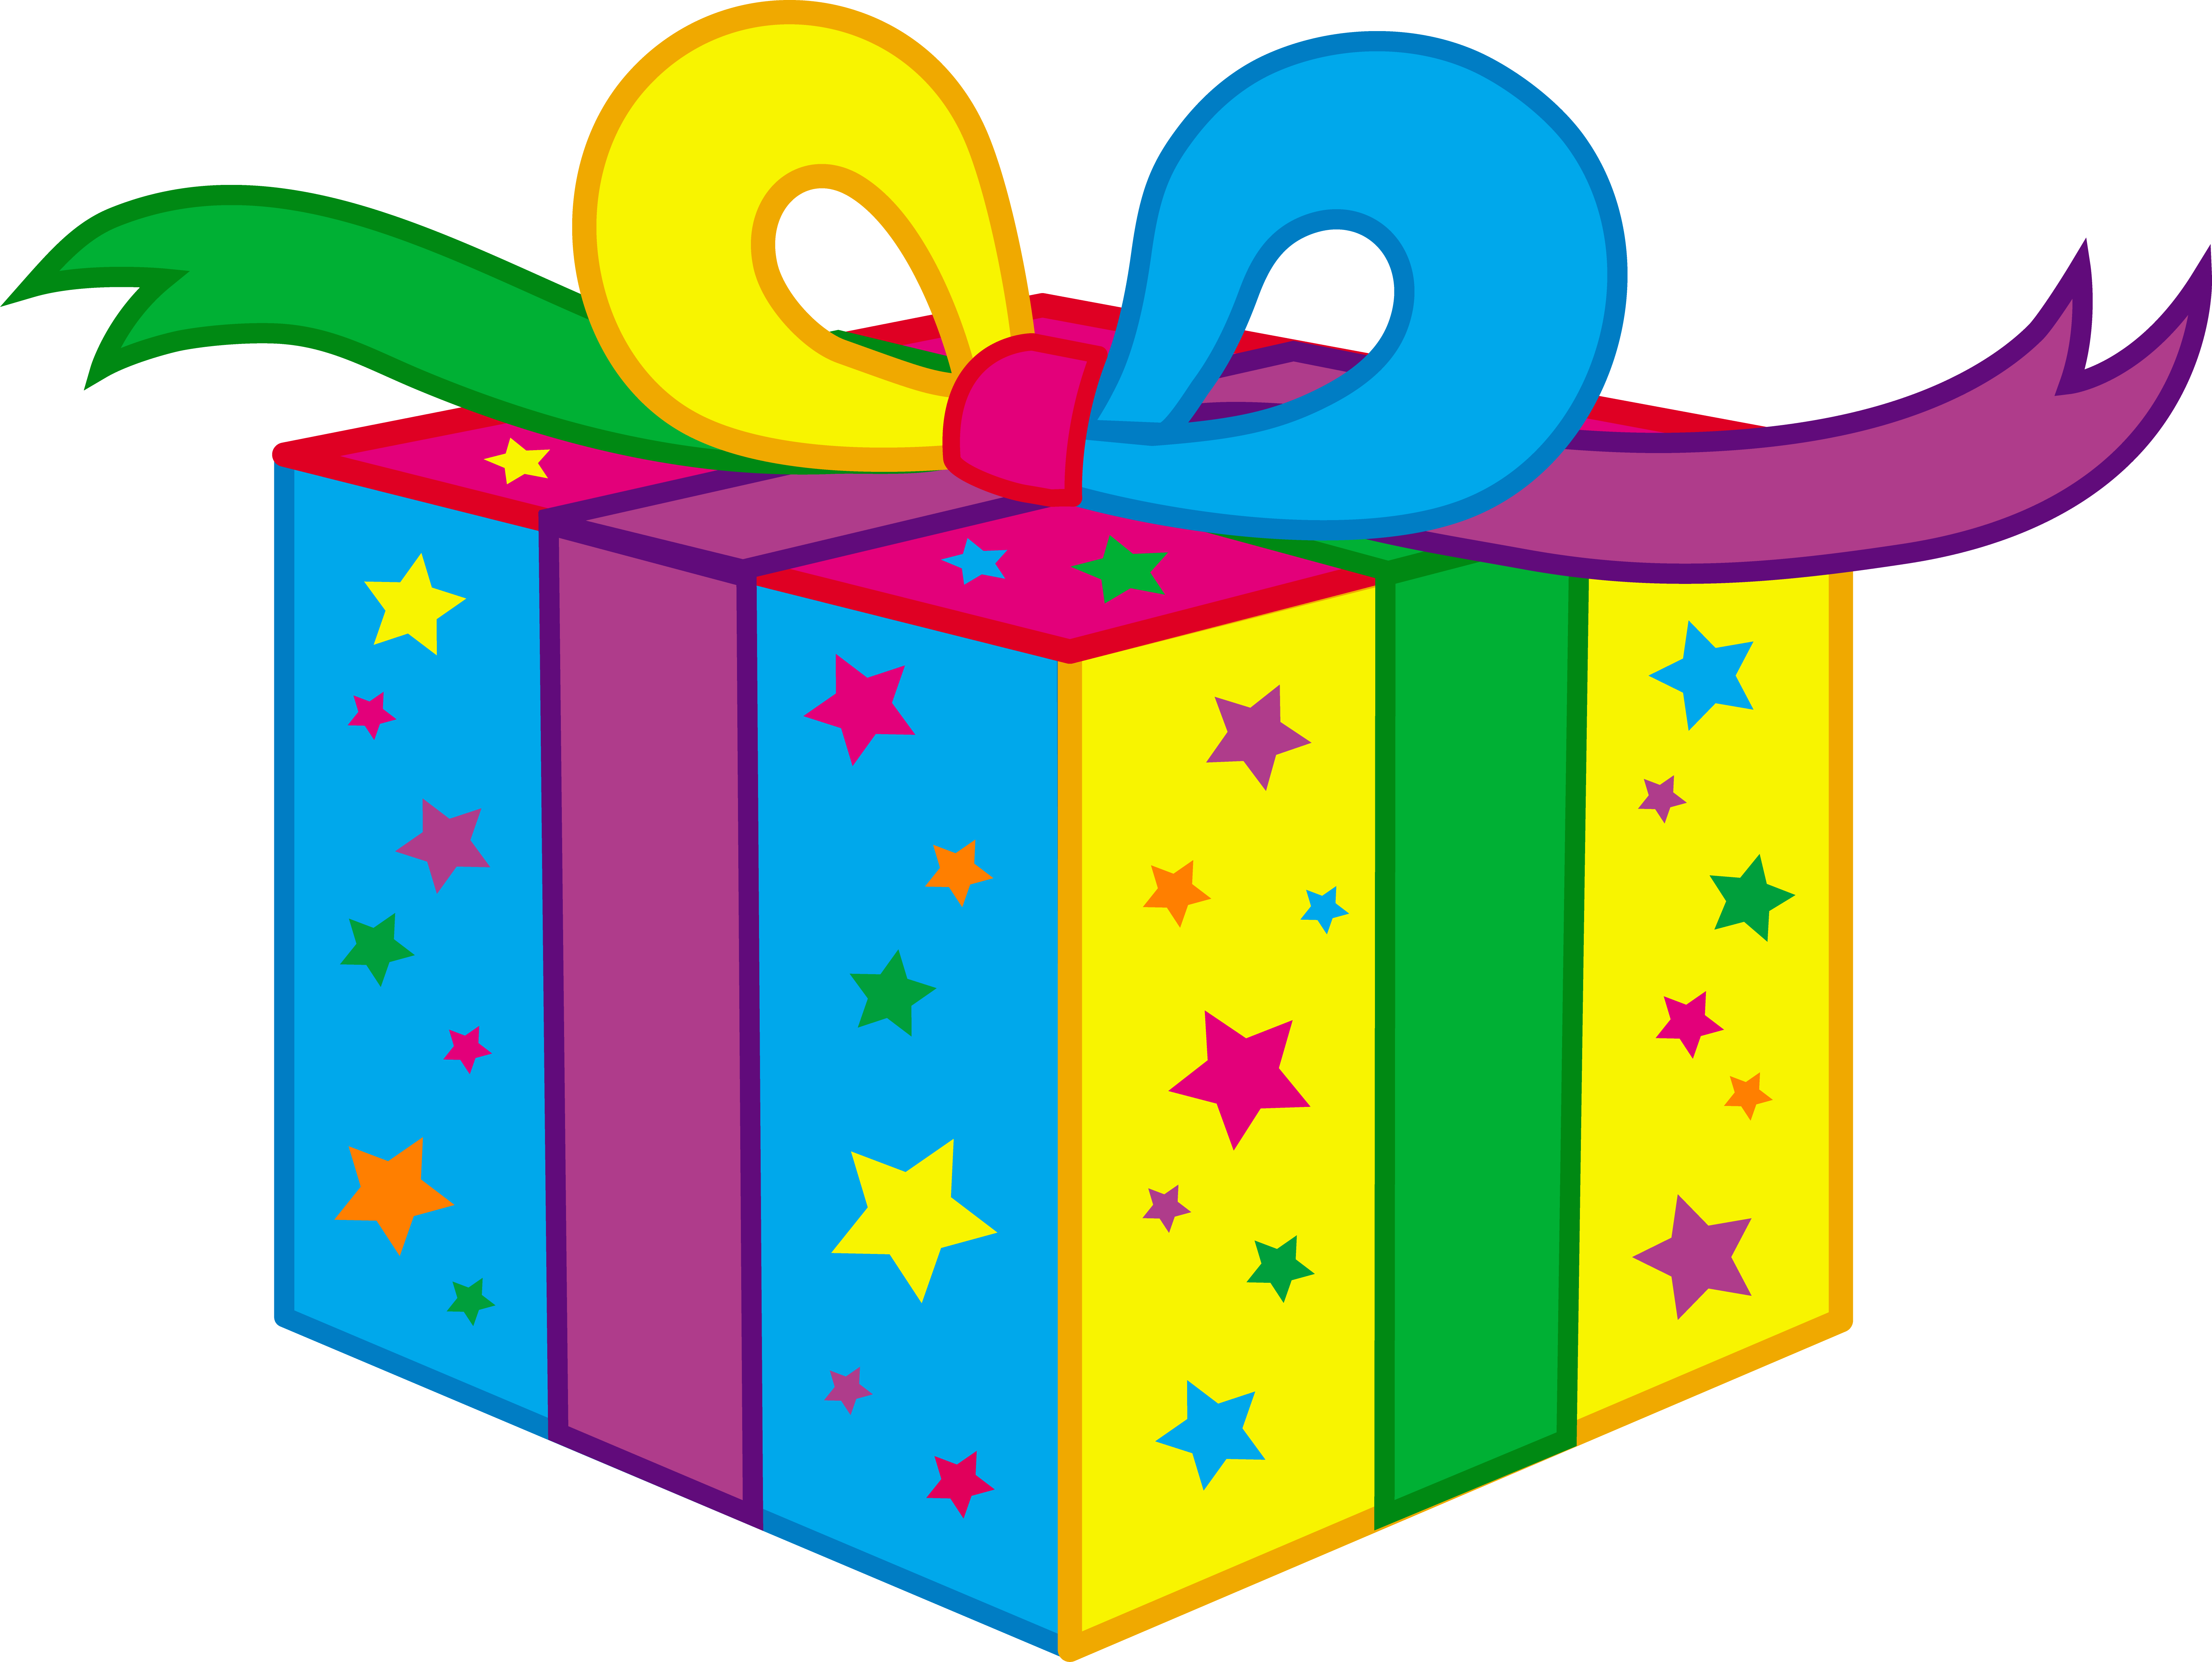 Birthday Present Clipart & Birthday Present Clip Art Images.